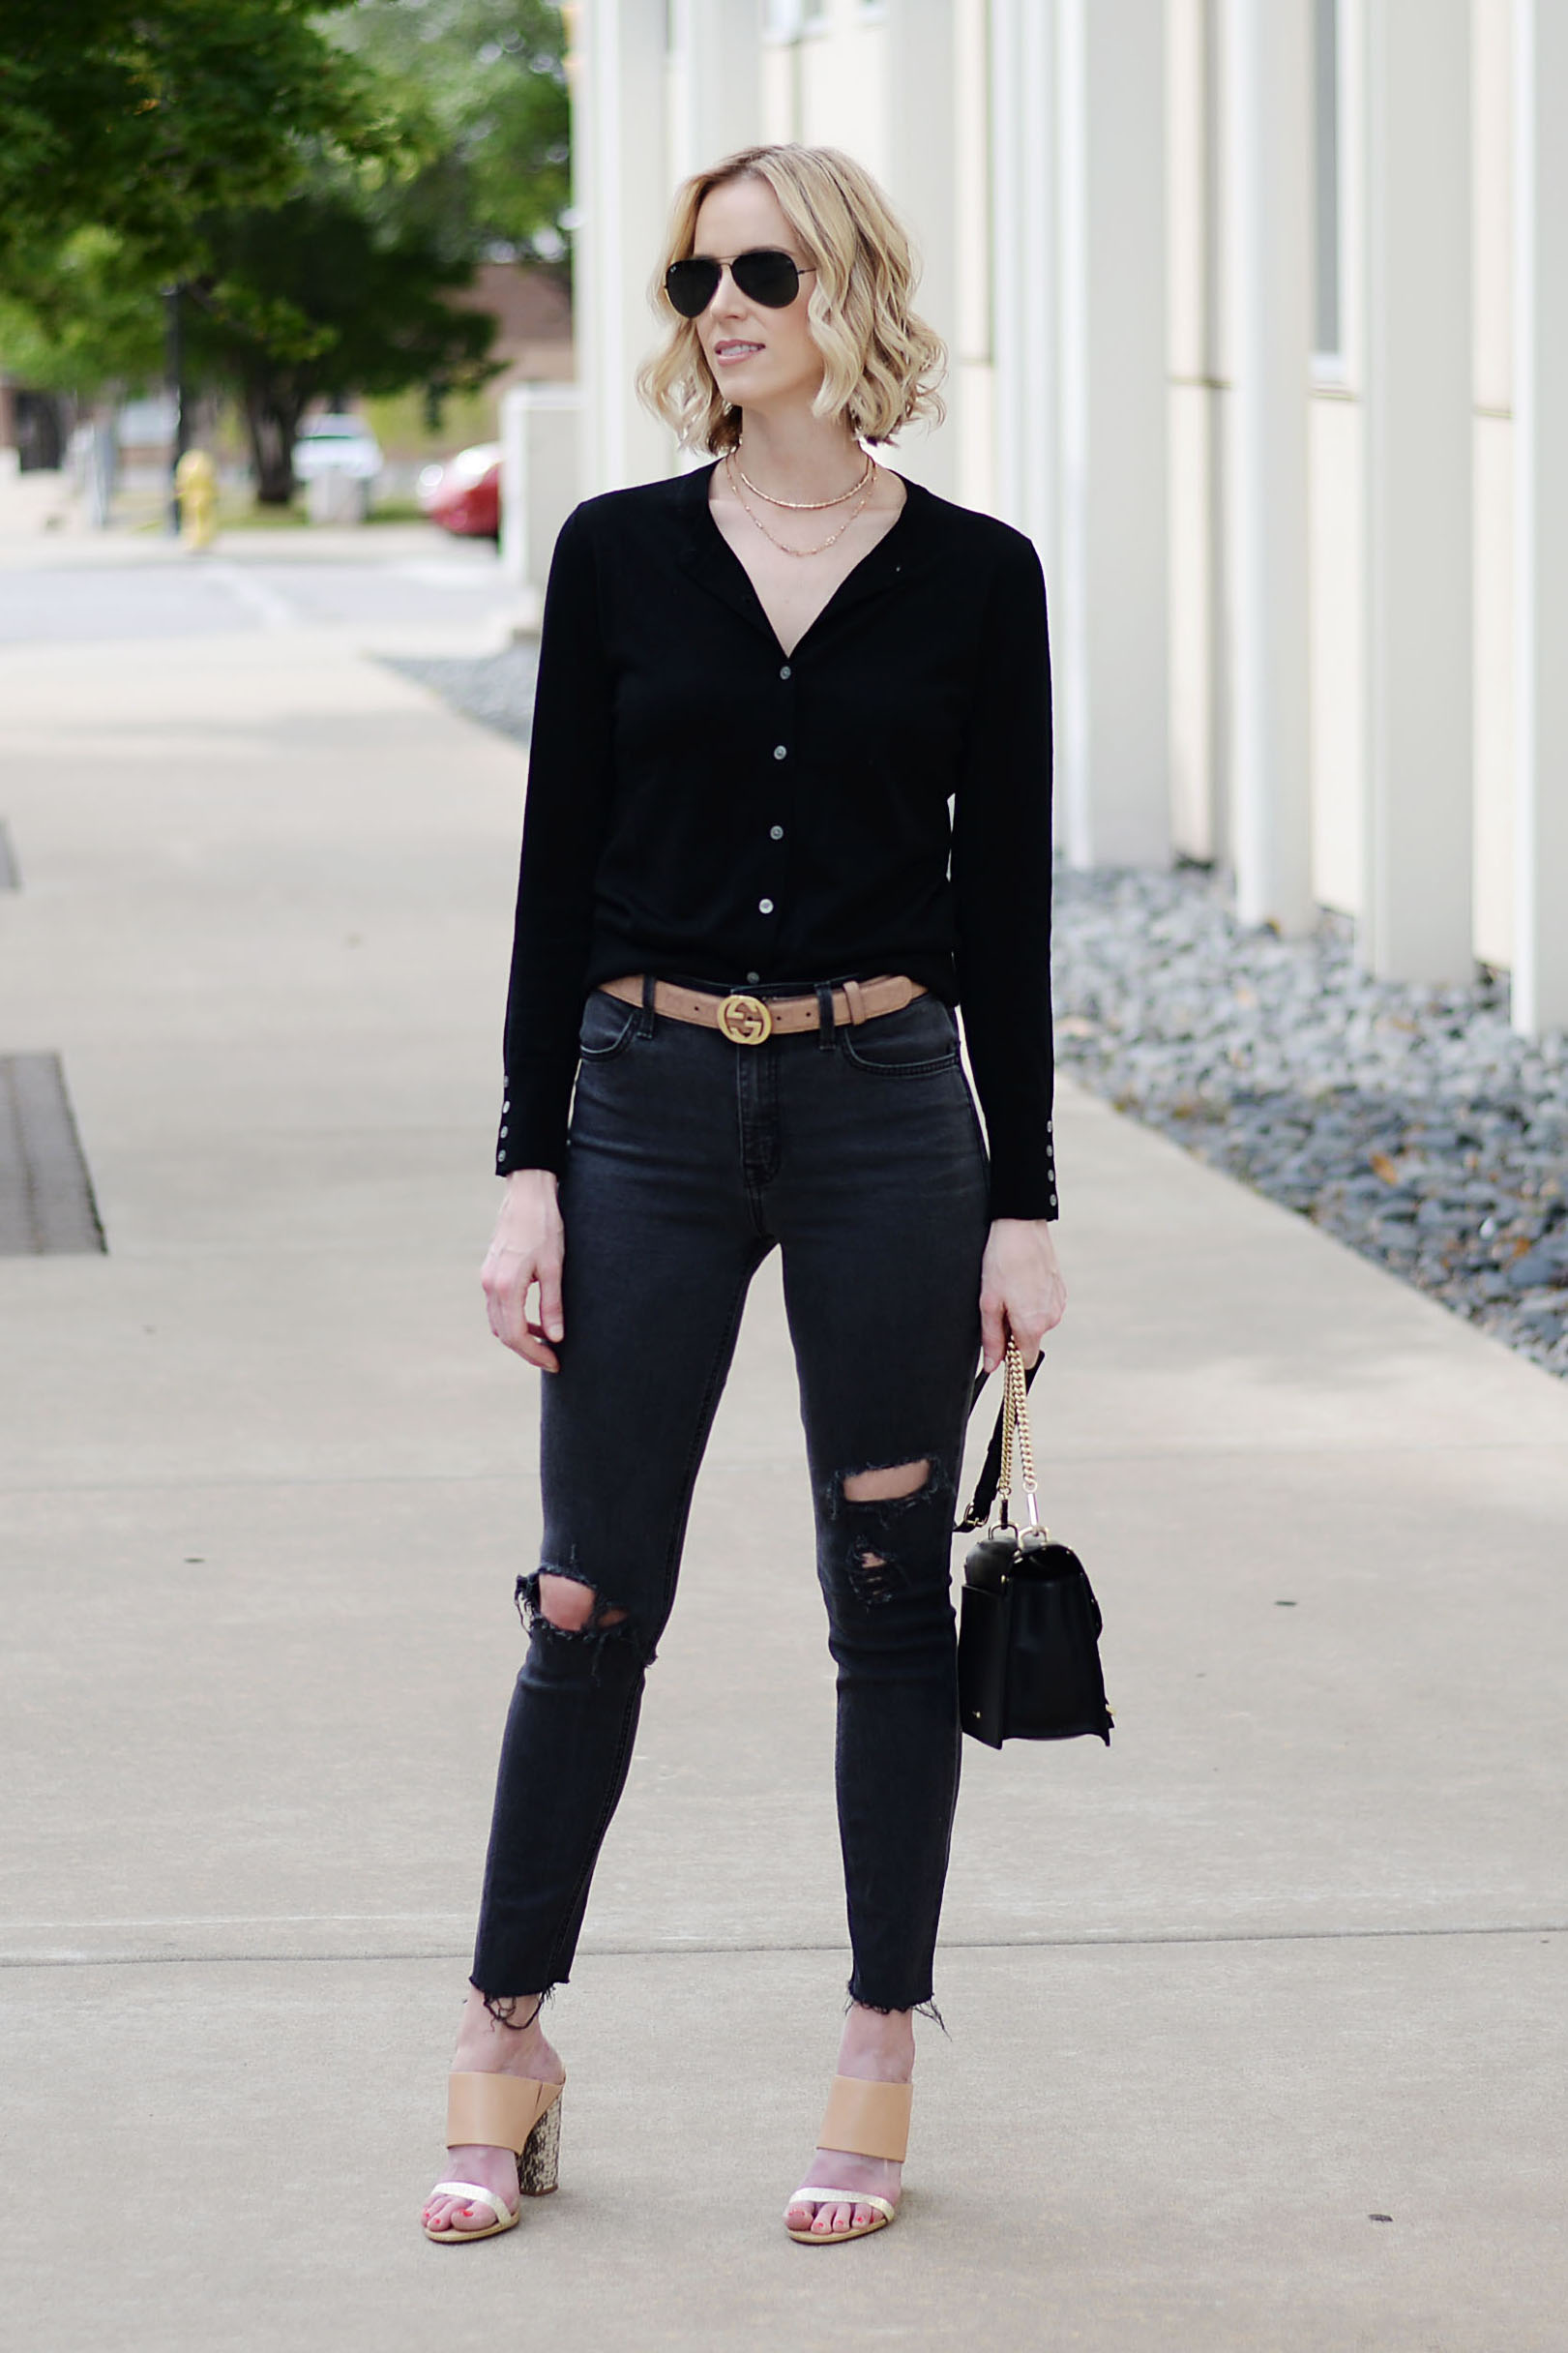 9cdd5d065 ... how to wear a cardigan as a top, all black outfit, gucci belt, ...